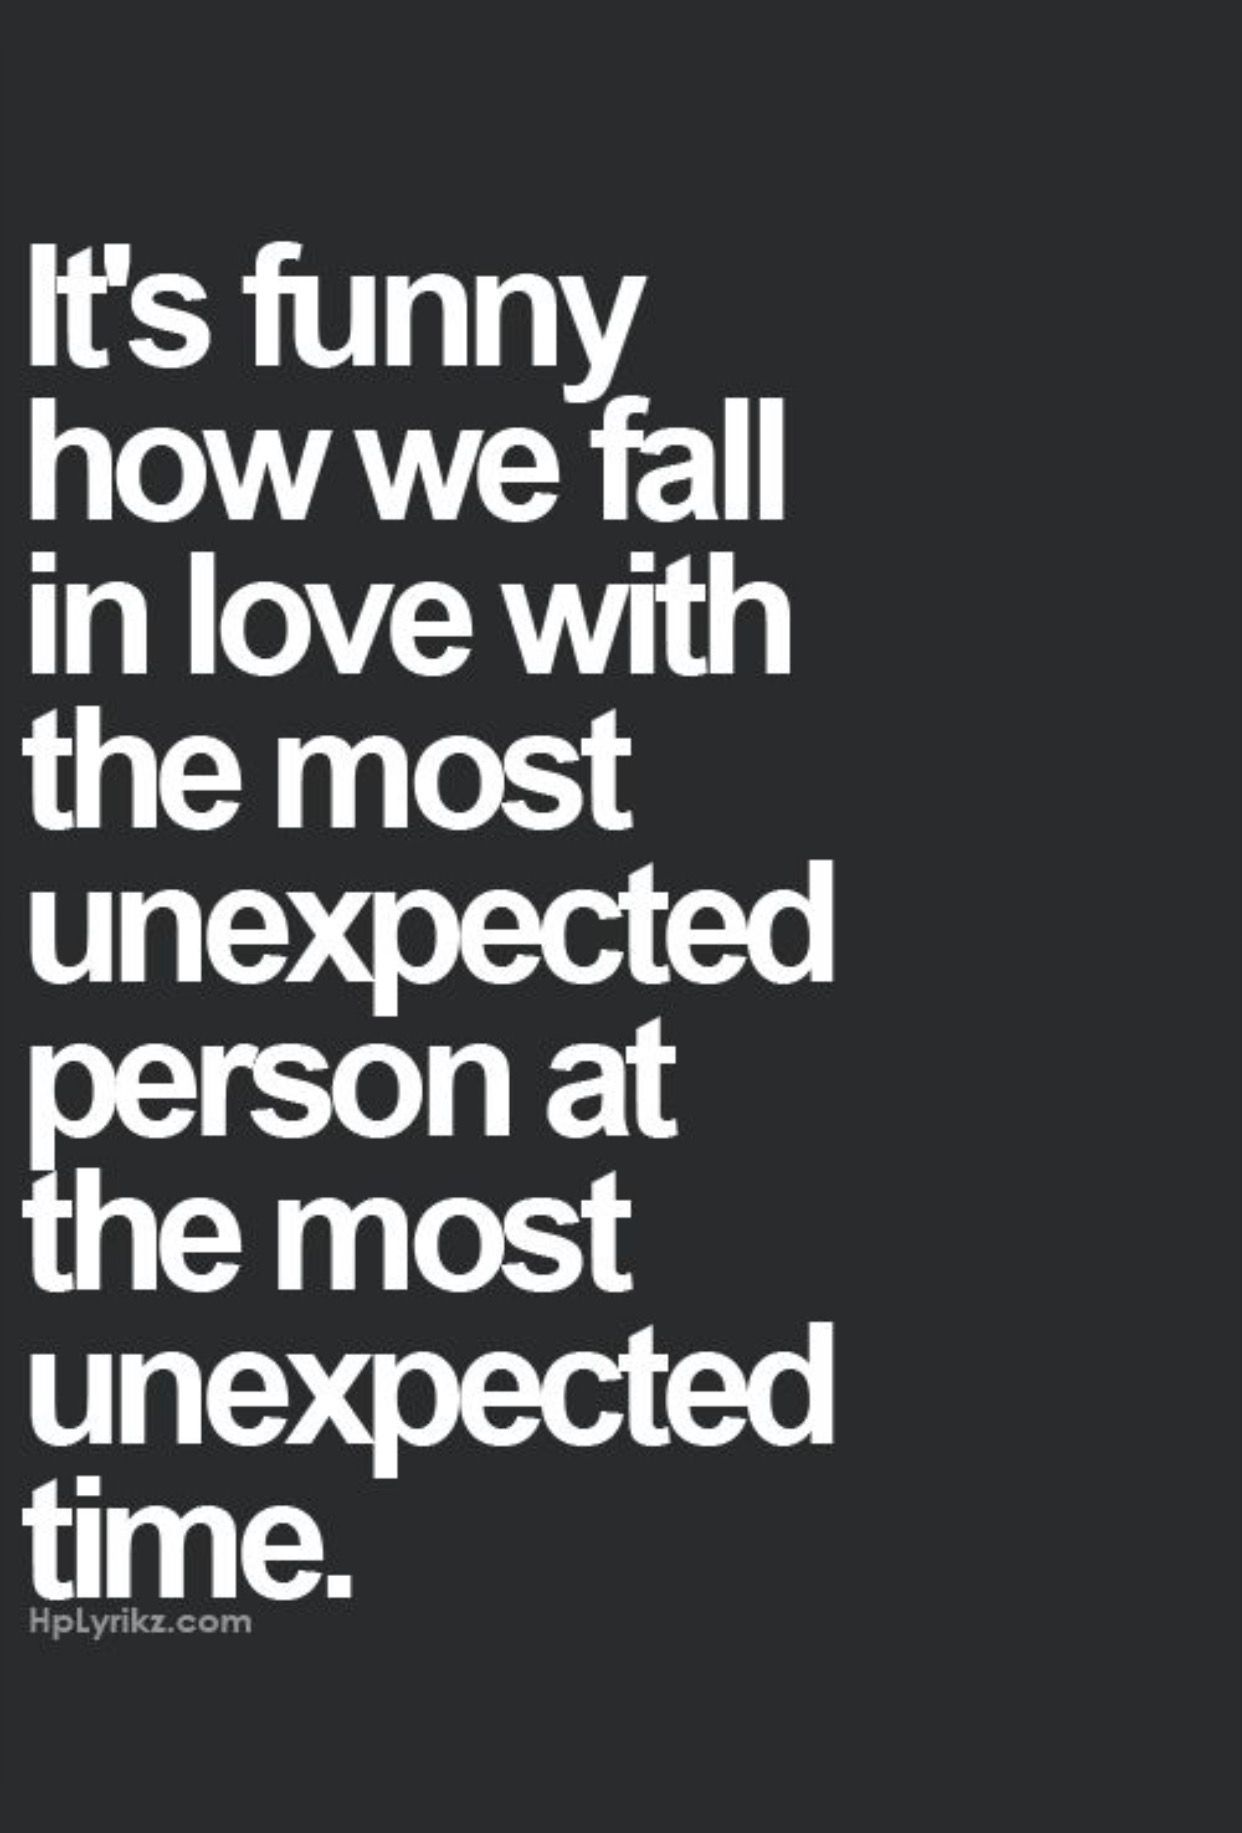 Love Quotes For Dating Pinmaria Diaz On Love Quotes  Pinterest